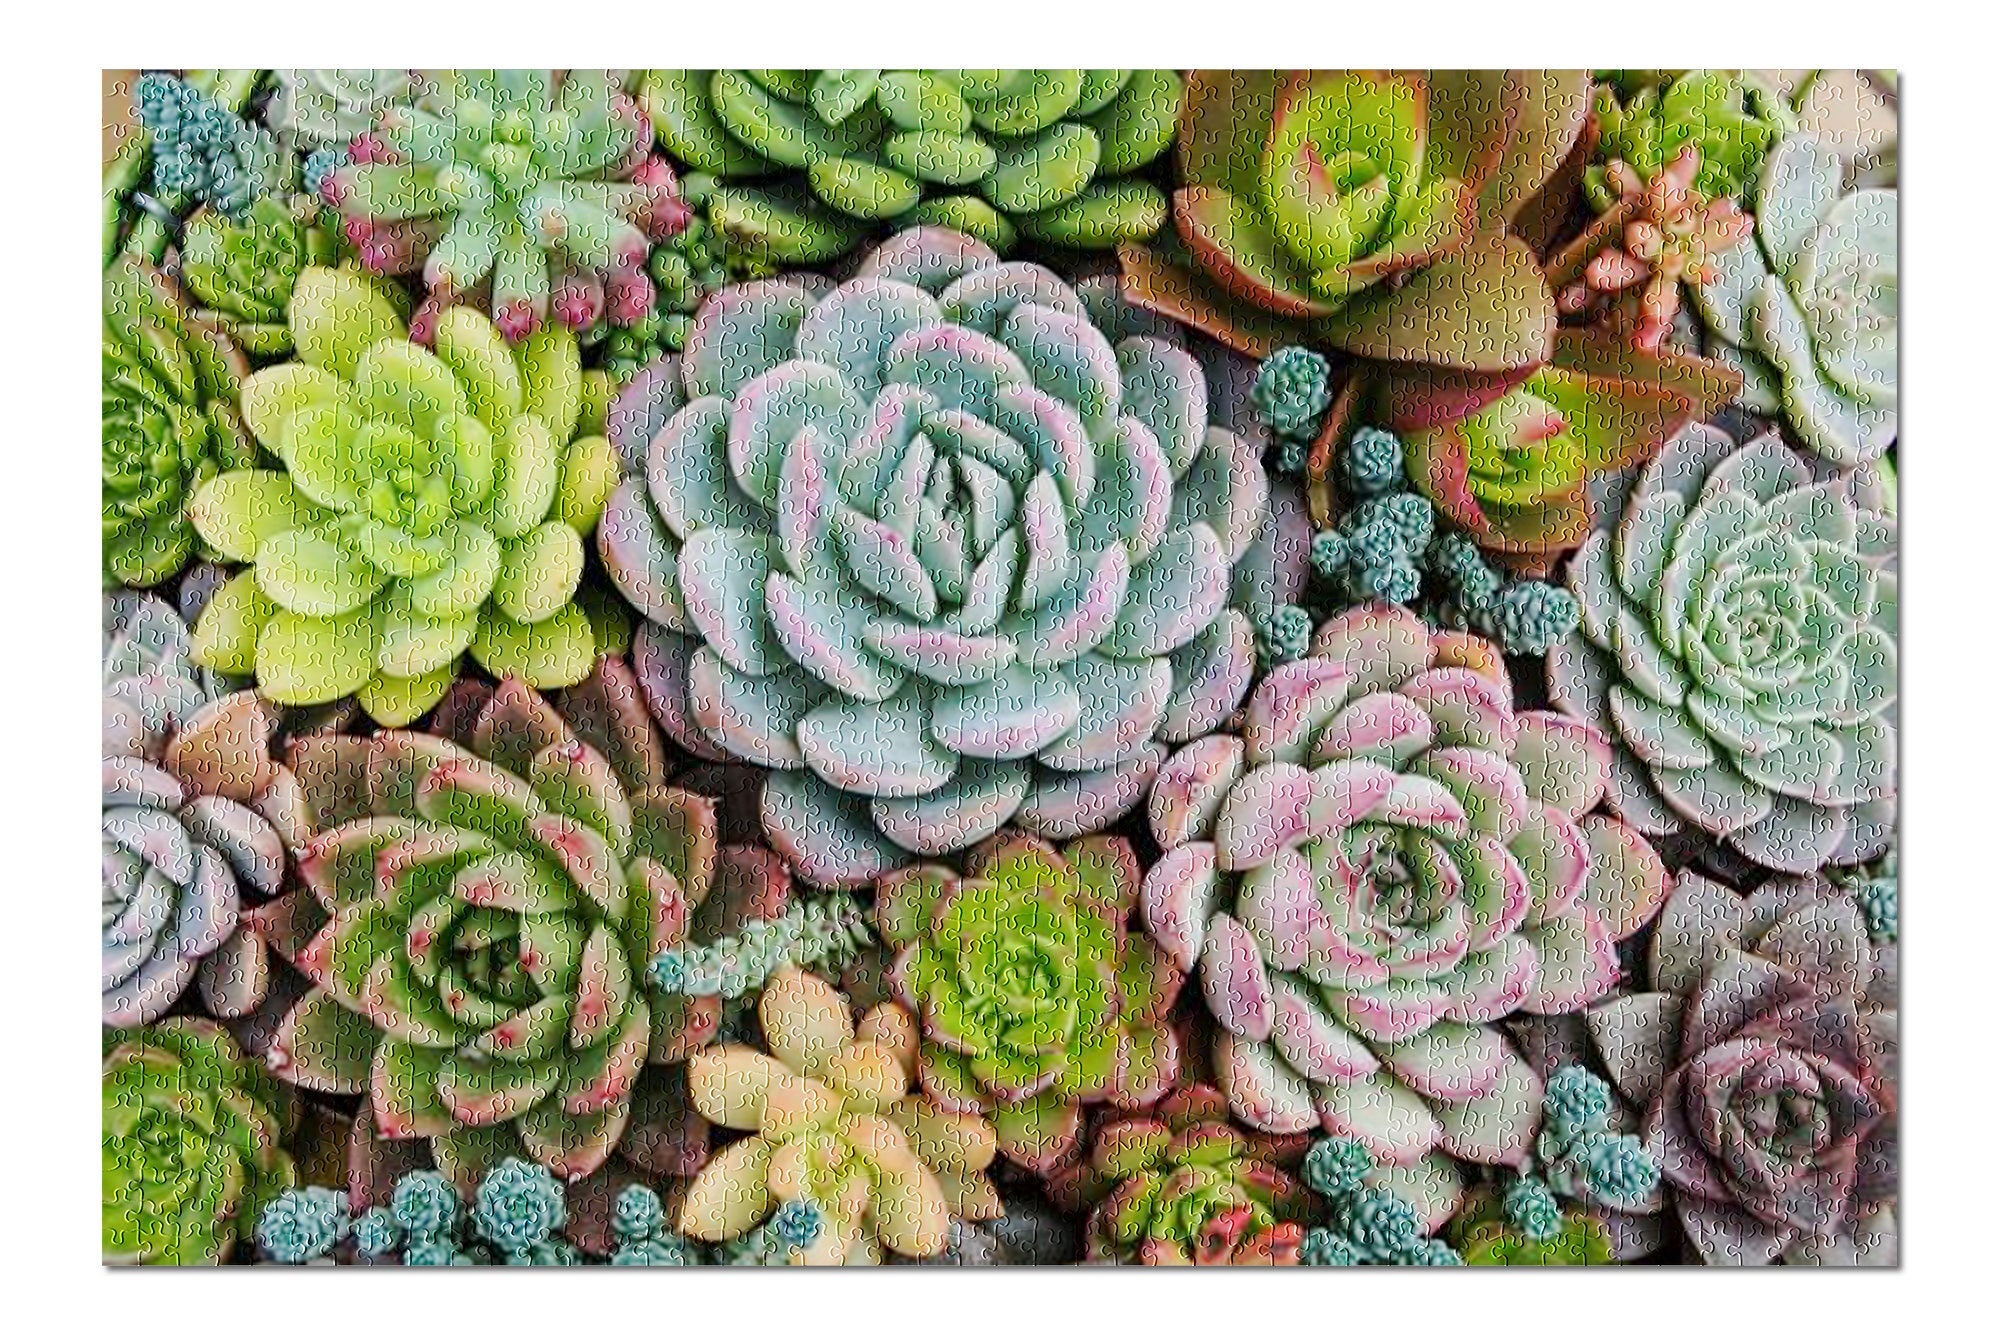 Arrangement of Many Colorful Succulents in a Planter